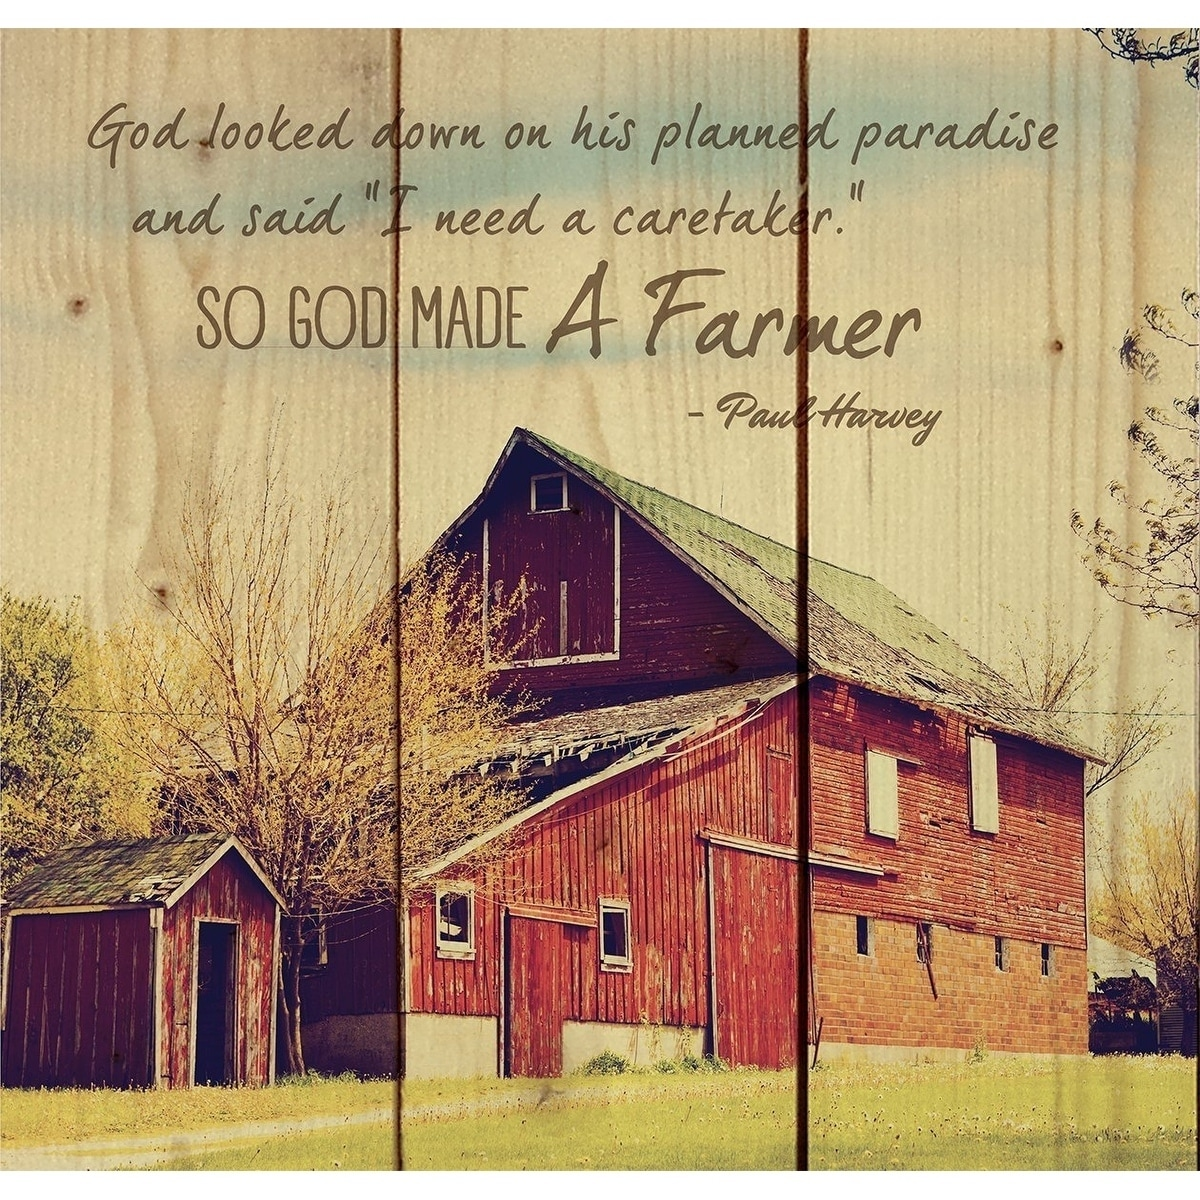 Shop So God Made a Farmer Old Red Barn 10 x 10 Wall Art Sign Plaque ...